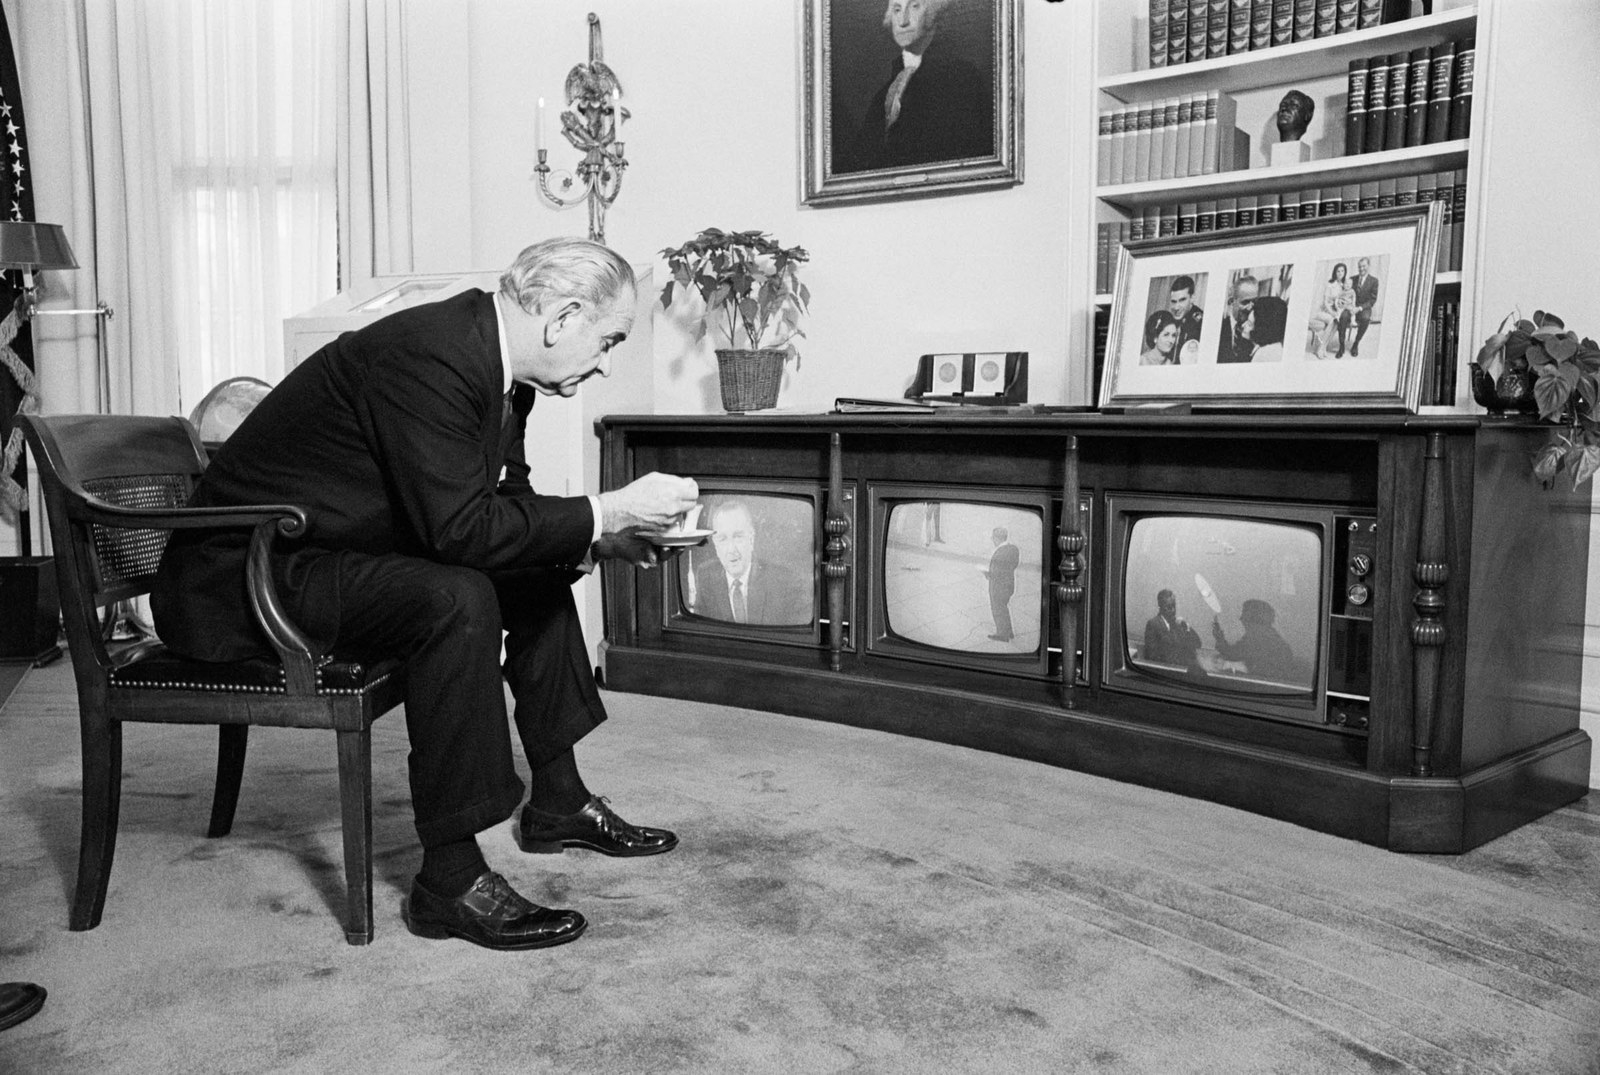 1968 President Johnson, like millions of other Americans, sat glued to his television sets on Dec. 27 during the critical stage of the Apollo 8 mission in which astronauts Frank Borman, James Lovell, and William Anders splashed into the Pacific at the end of their epochal voyage around the moon. The president sipped a cup of tea as he watched.